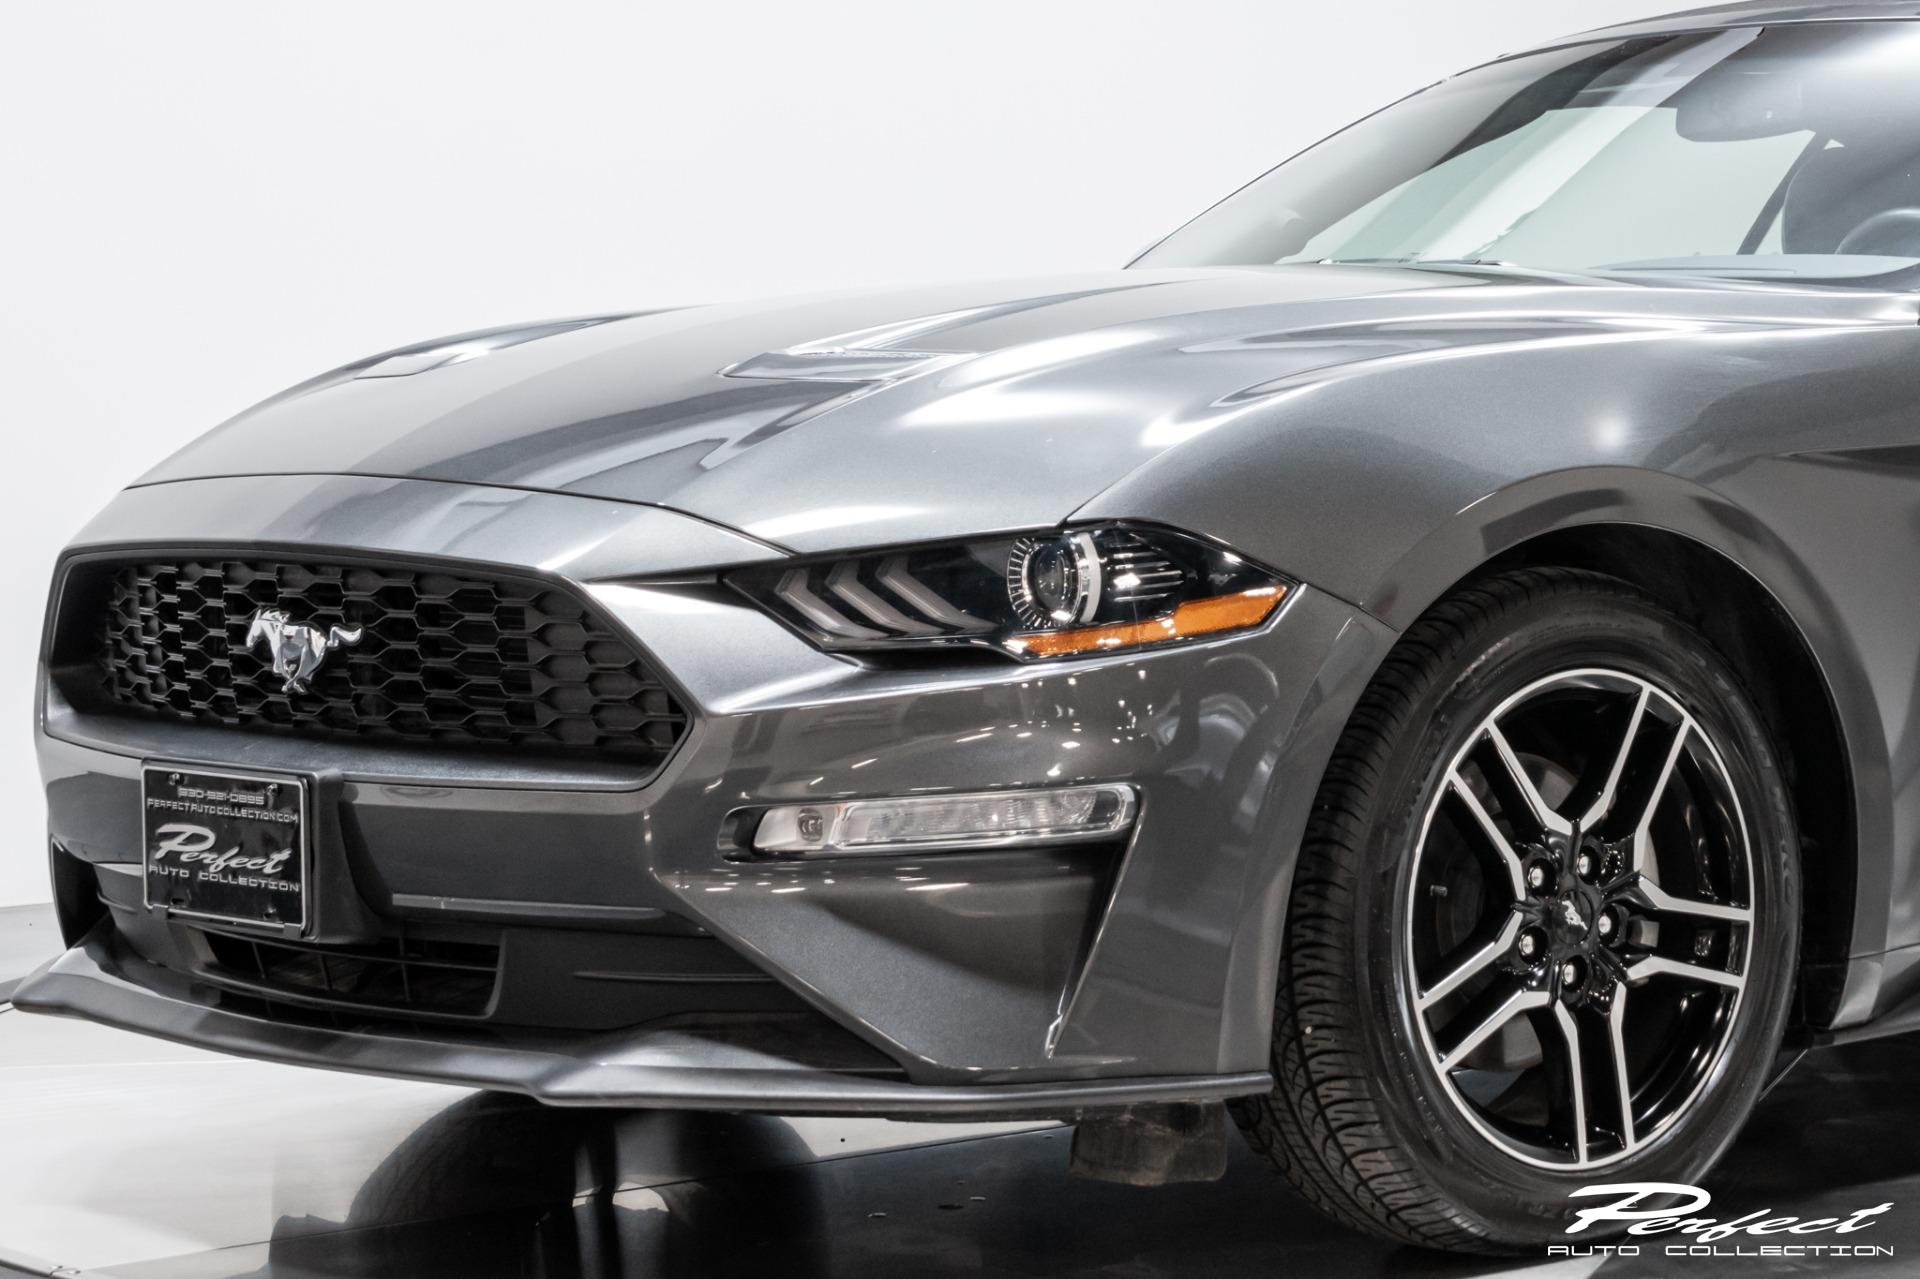 Used 2020 Ford Mustang EcoBoost Premium for sale $27,993 at Perfect Auto Collection in Akron OH 44310 2